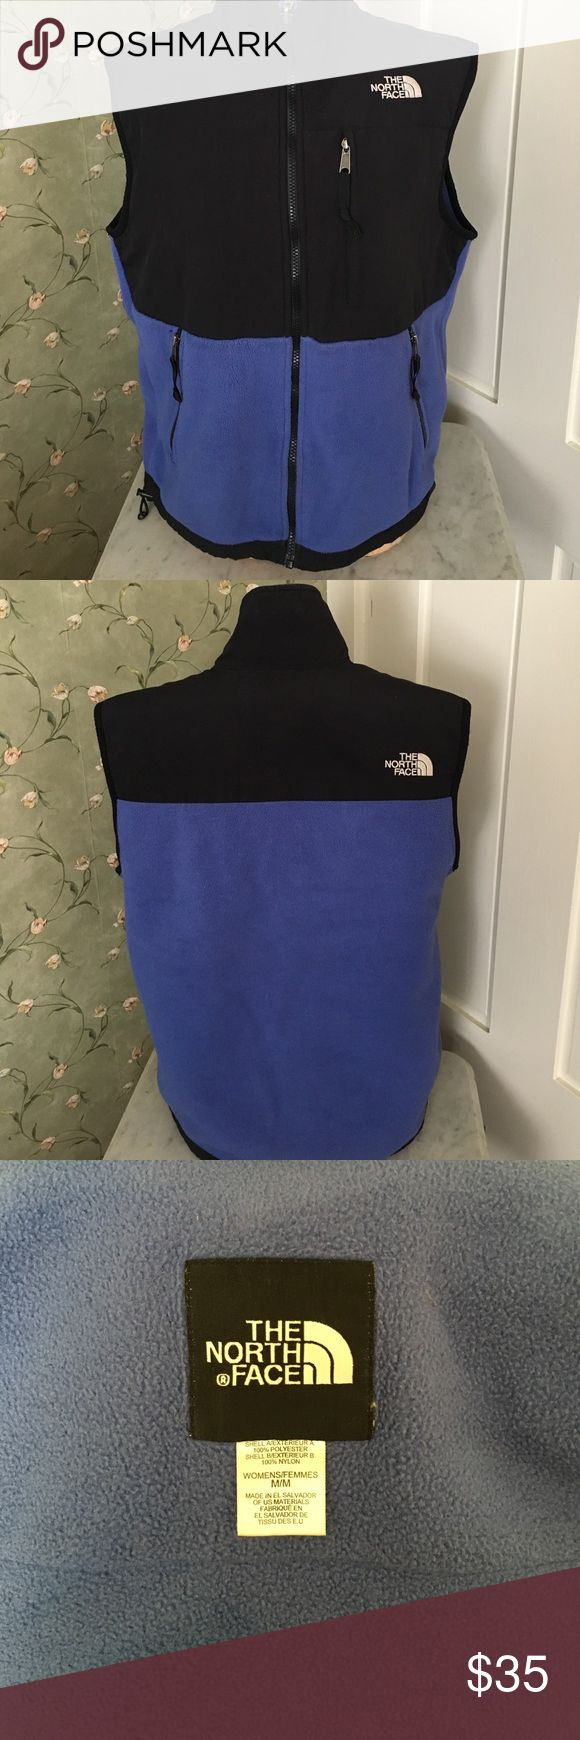 North Face Denali Vest North Face Denali Vest North Face Jackets & Coats Vests